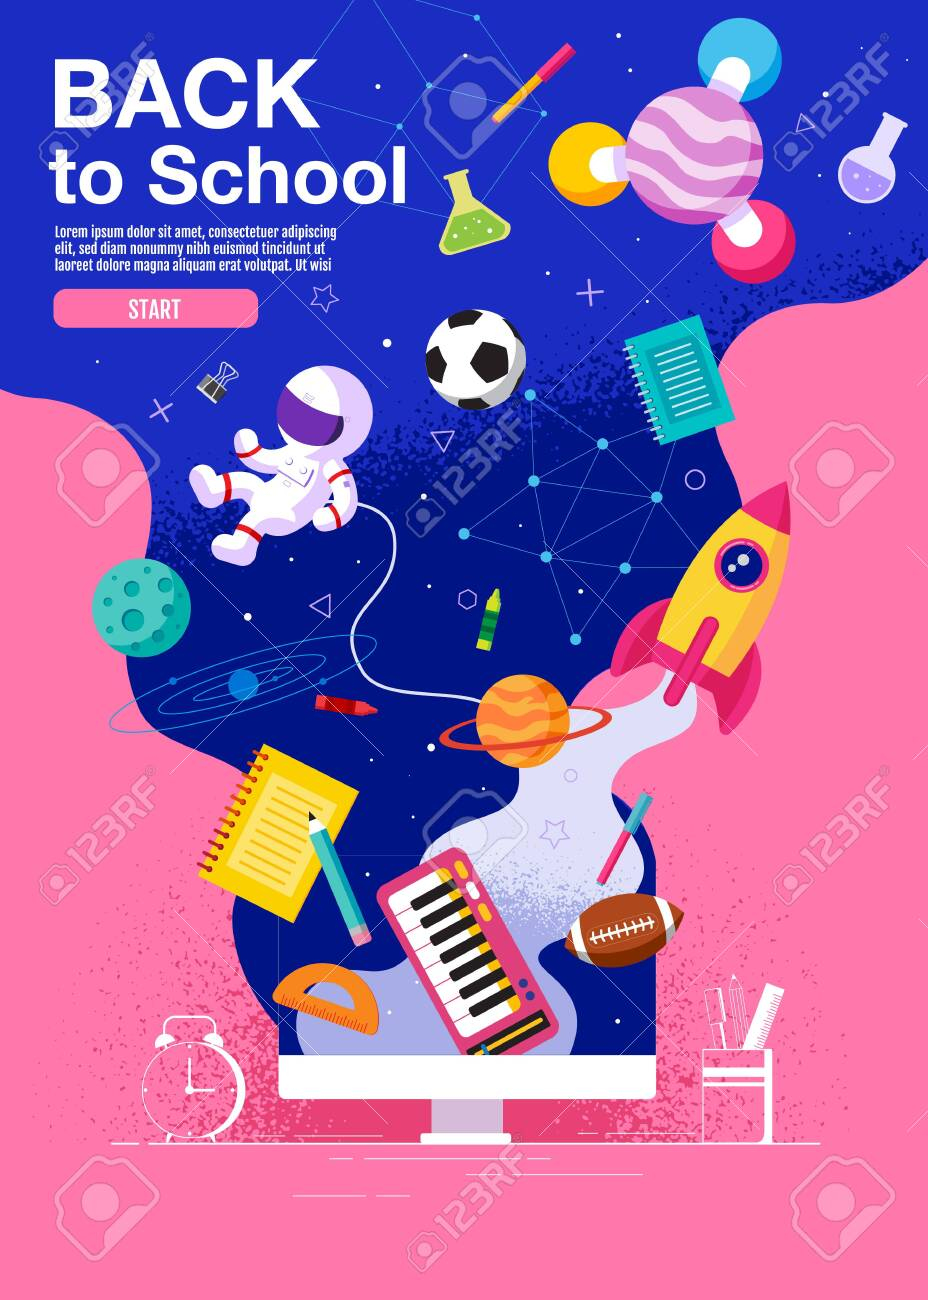 back to school ,inspiration, poster, flat design colorful, vector - 131995913